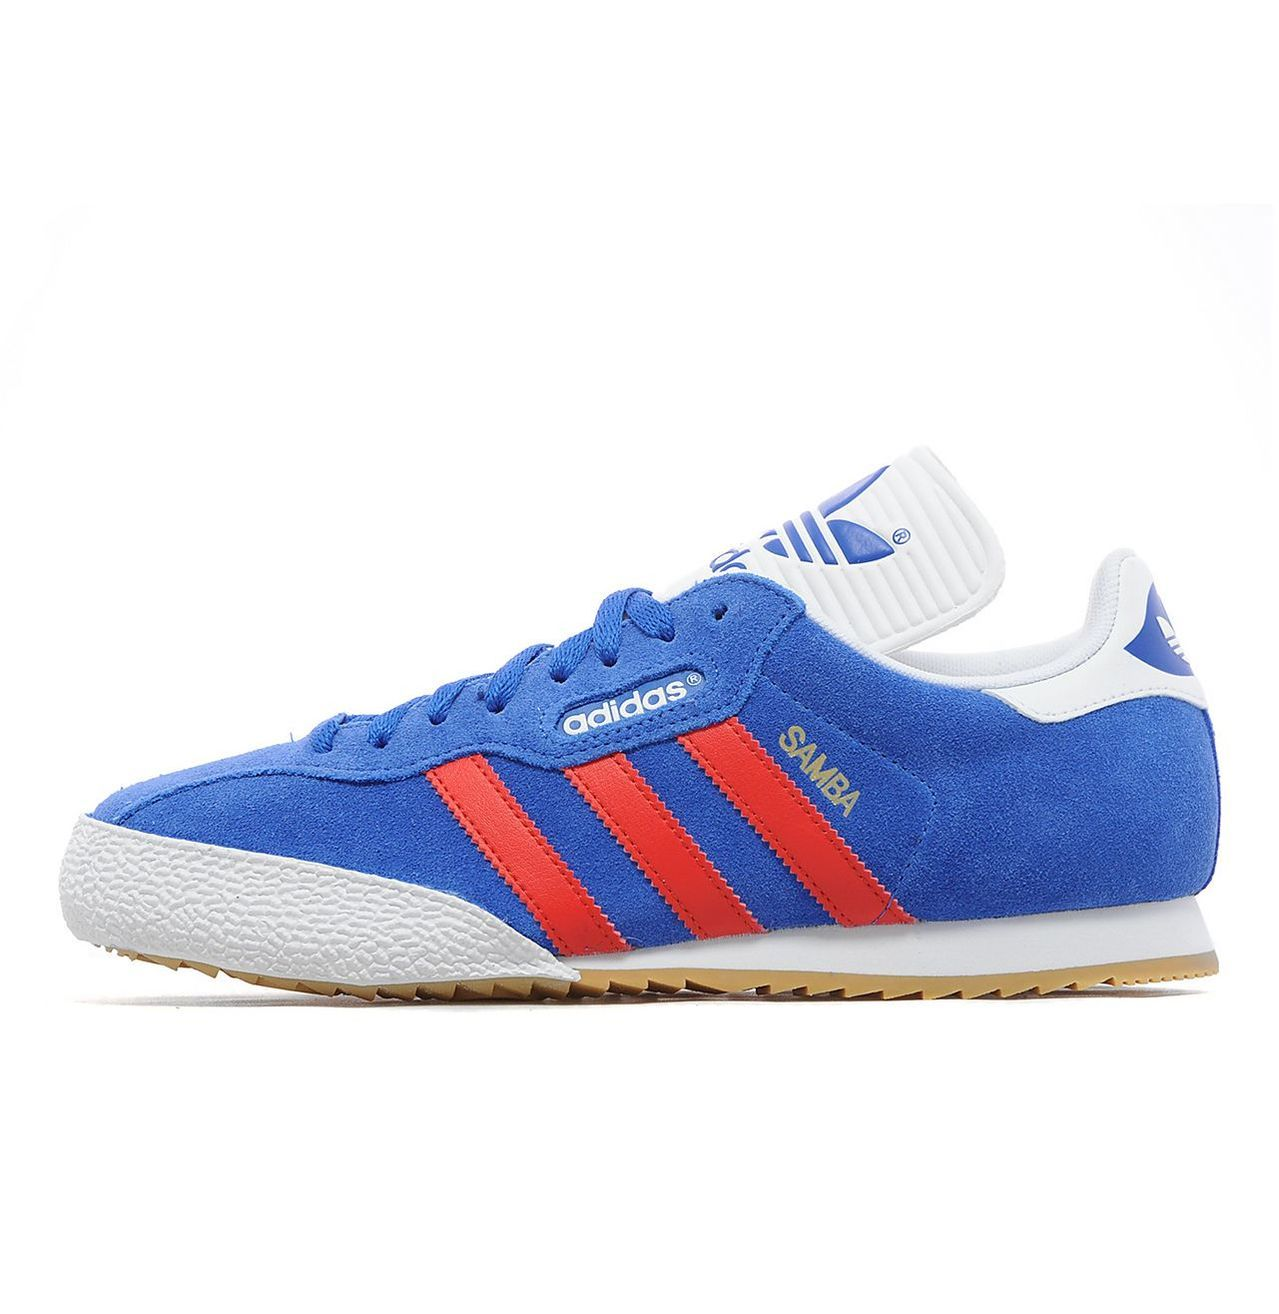 f1f705527de Adidas Samba Super - Satellite Blue   Red   White